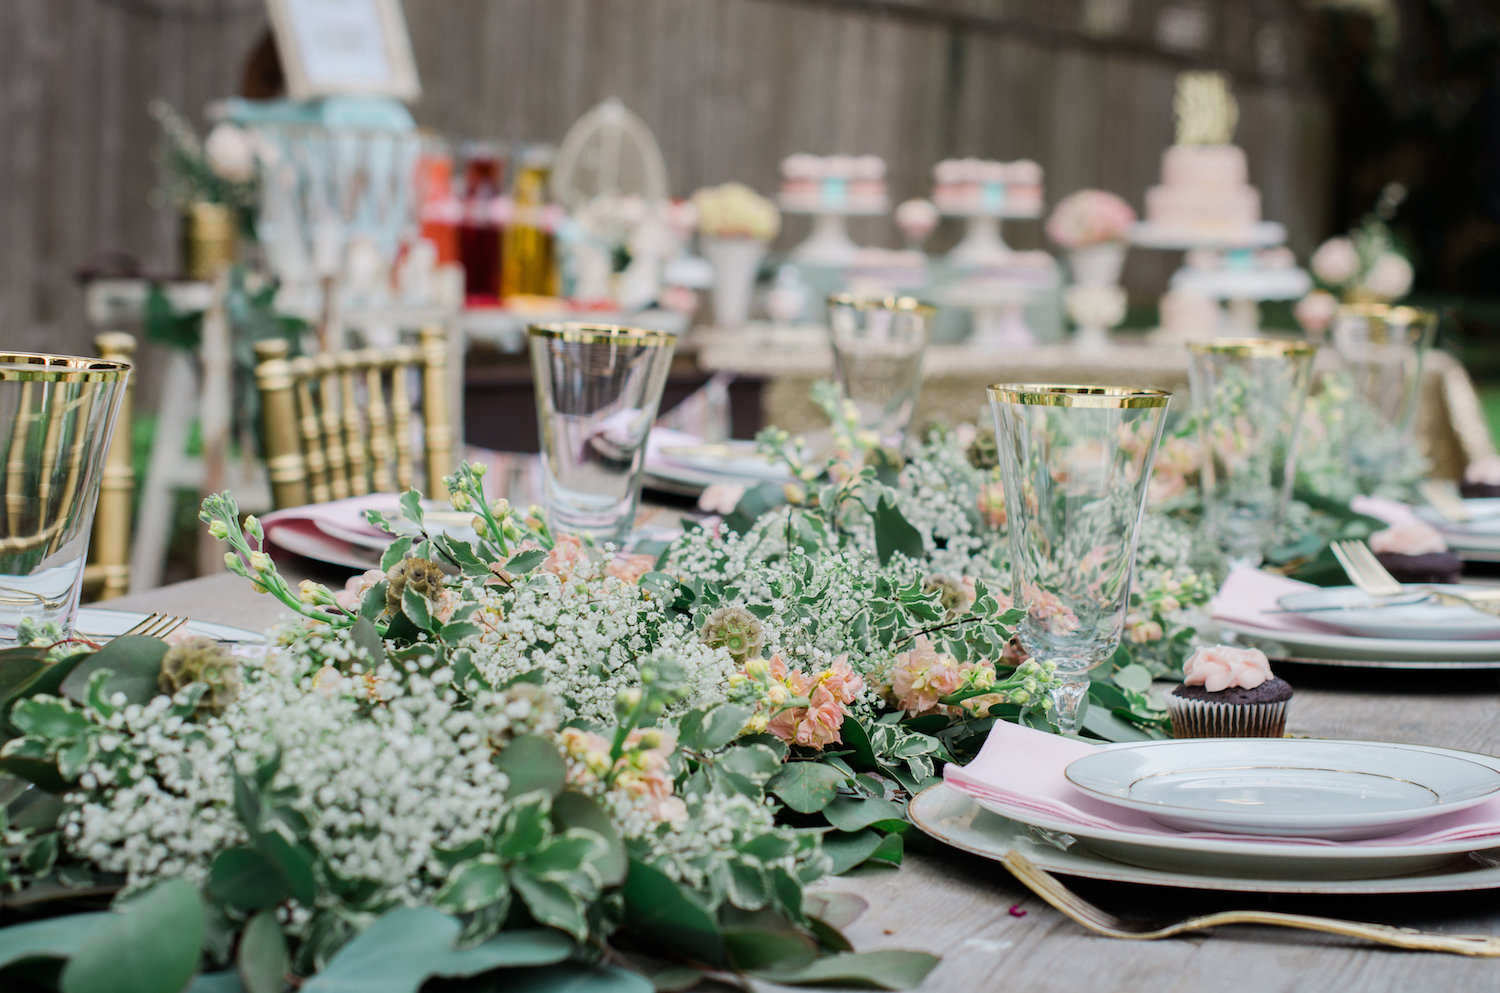 Gorgeous Greenery and Floral Garland table runner — Click to see 8 DIY Wedding Ideas for a Springtime Bridal Shower Brunch — Part of the 37 Creative DIY Wedding Ideas for Spring as seen on www.BrendasWeddingBlog.com